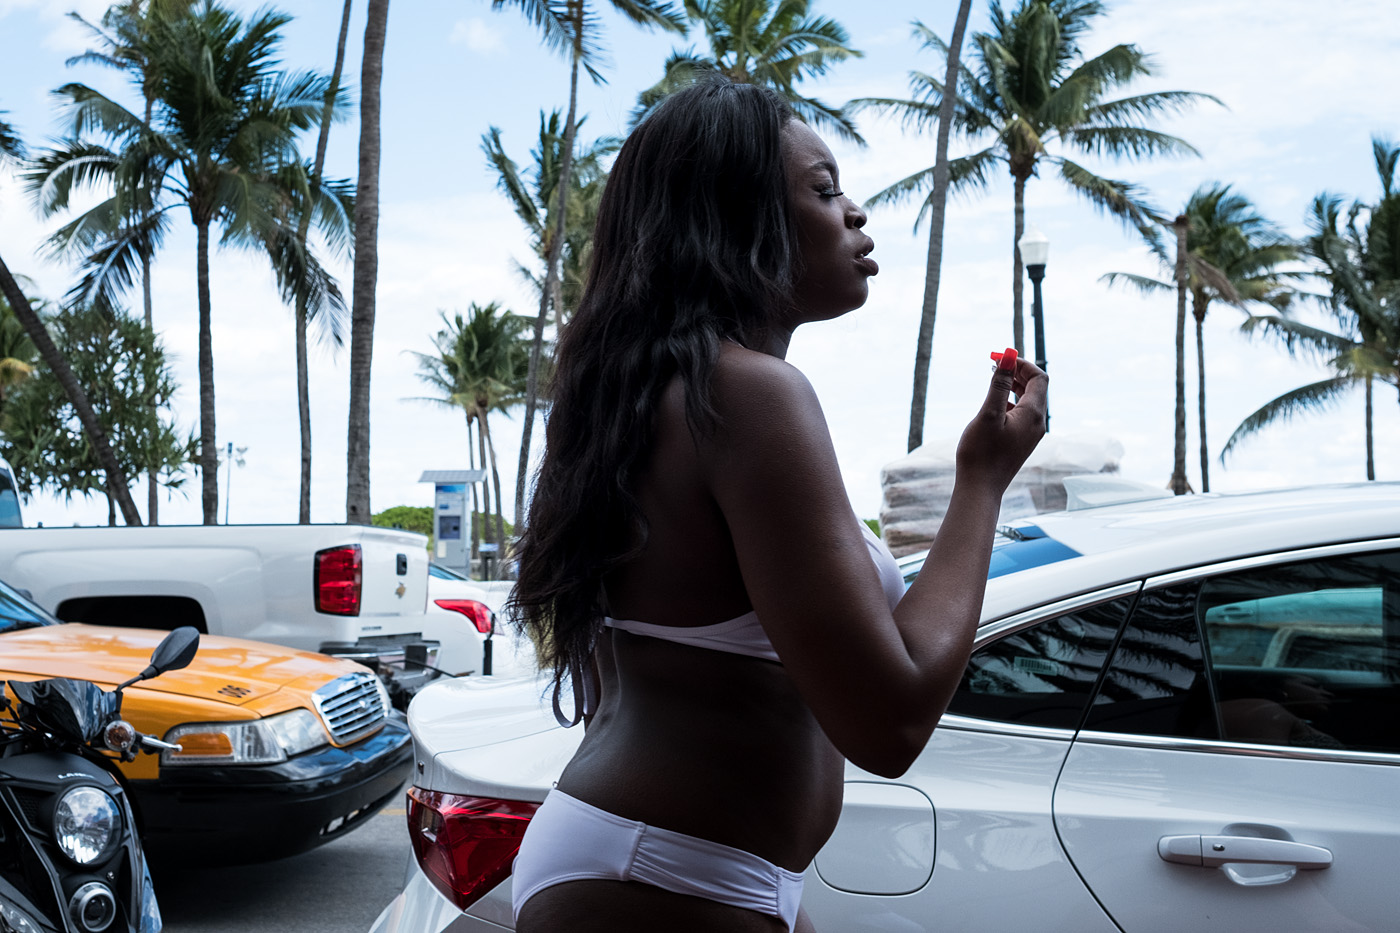 People watching in South Beach #2